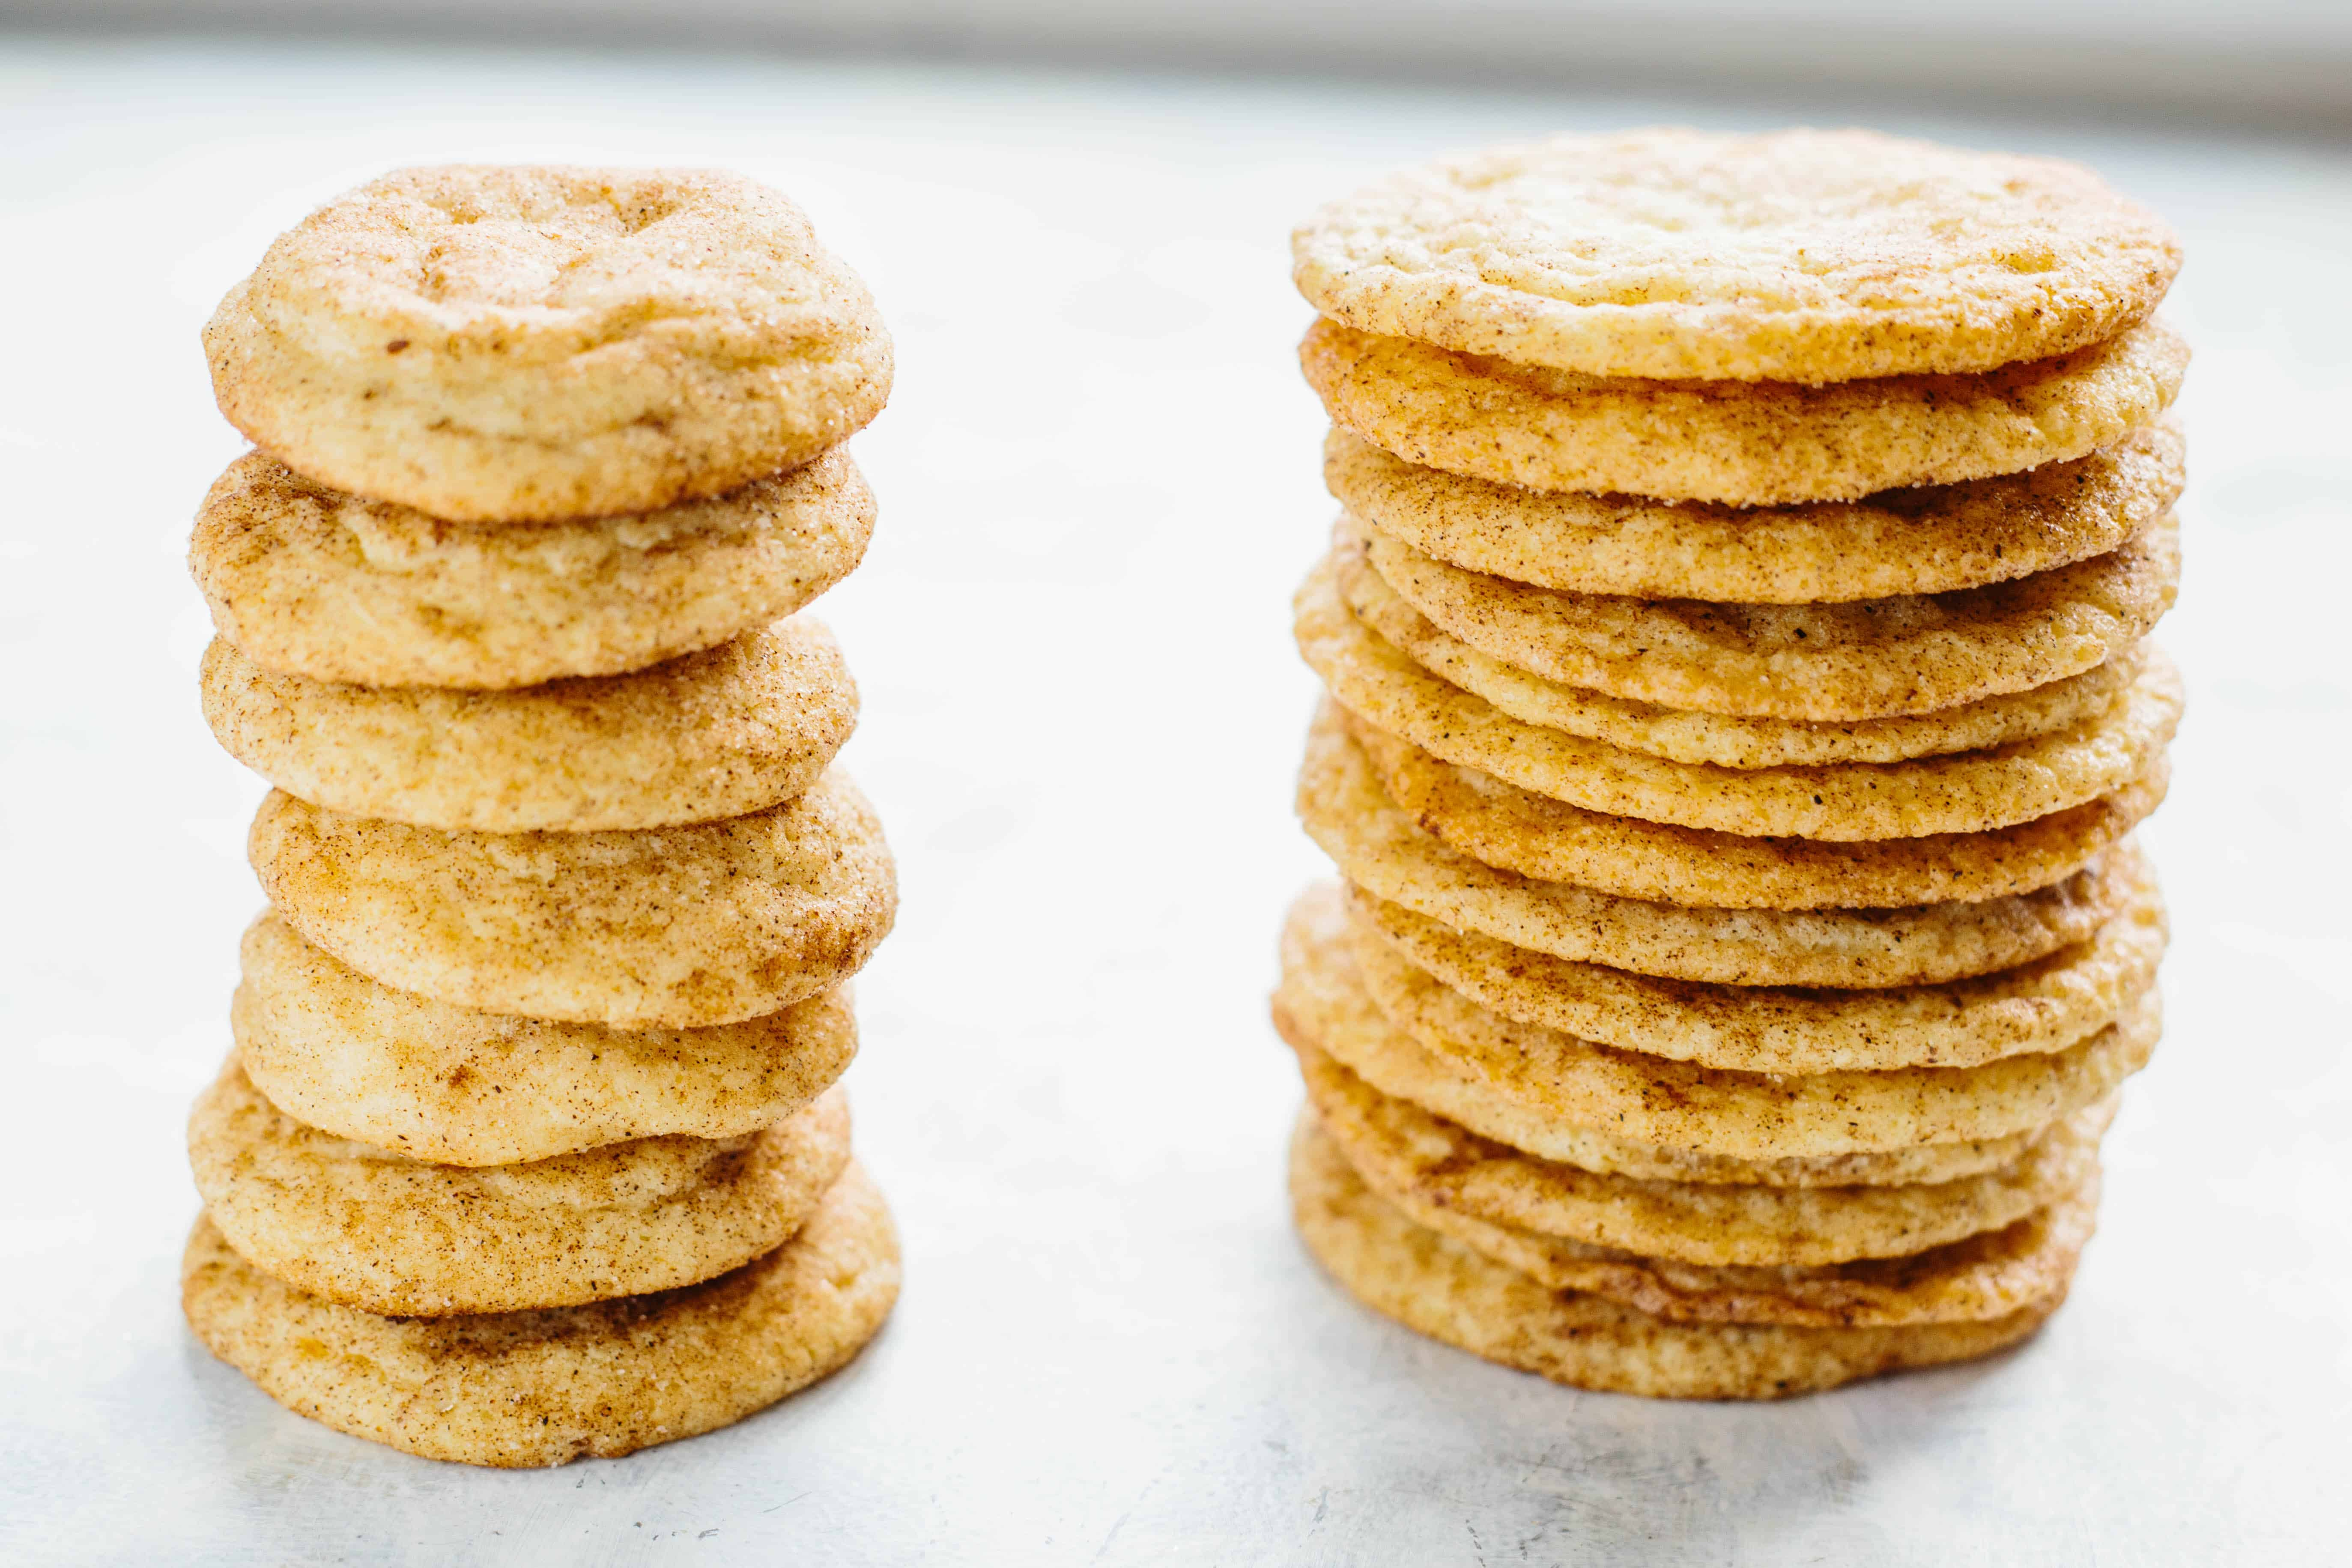 Two stacks of snickerdoodles, one is thick and chewy cookies and the other thinner and crispy.